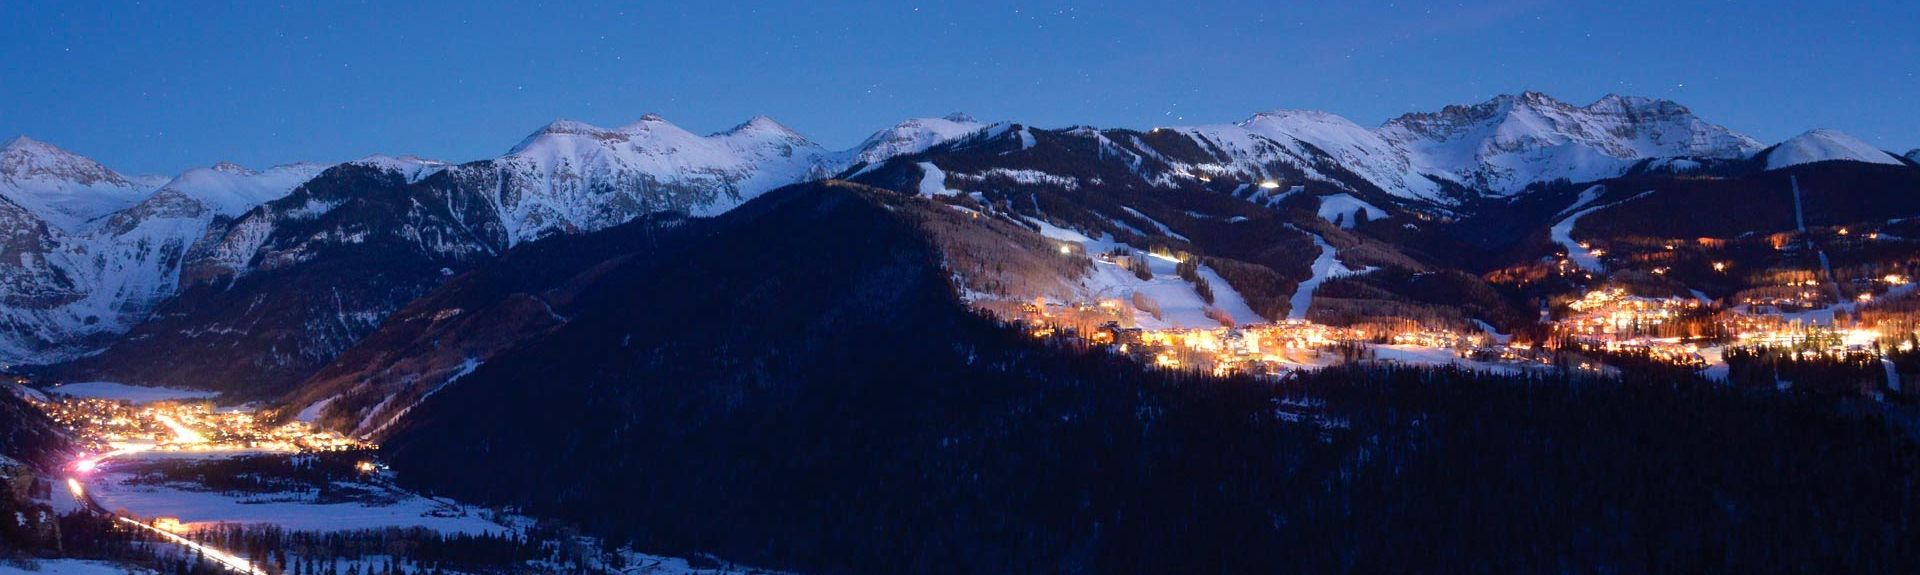 Telluride Ski Resort, Mountain Village, CO, USA